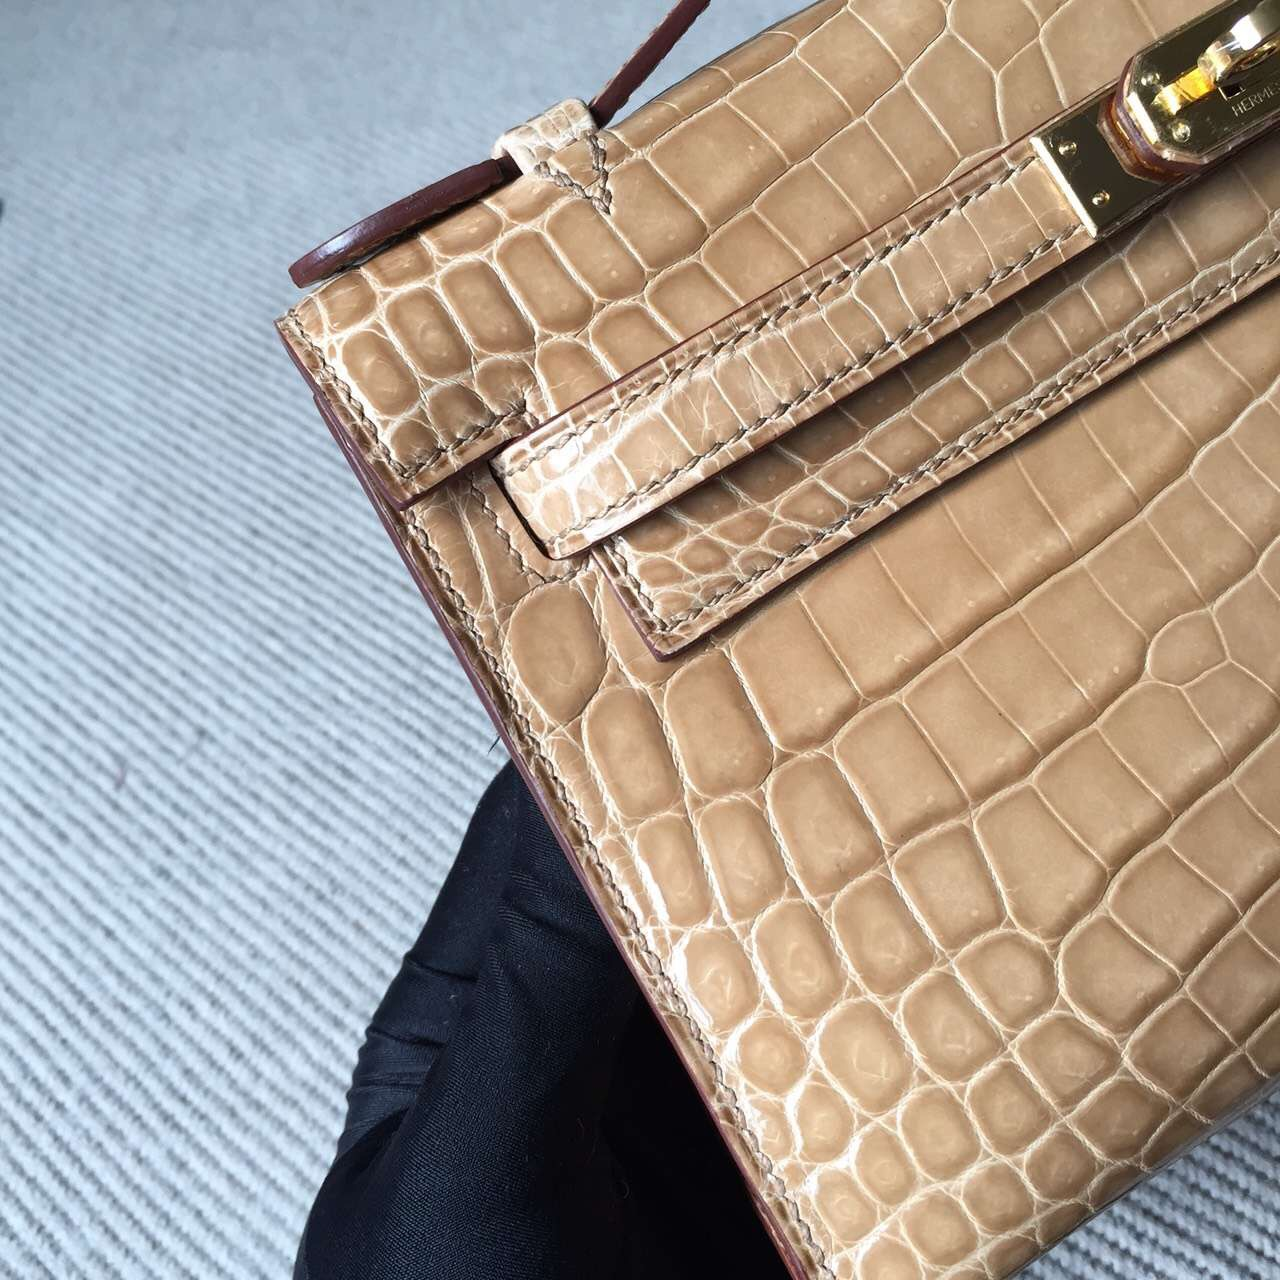 On Sale Hermes Apricot Crocodile Shiny Leather Minikelly Clutch Bag22CM